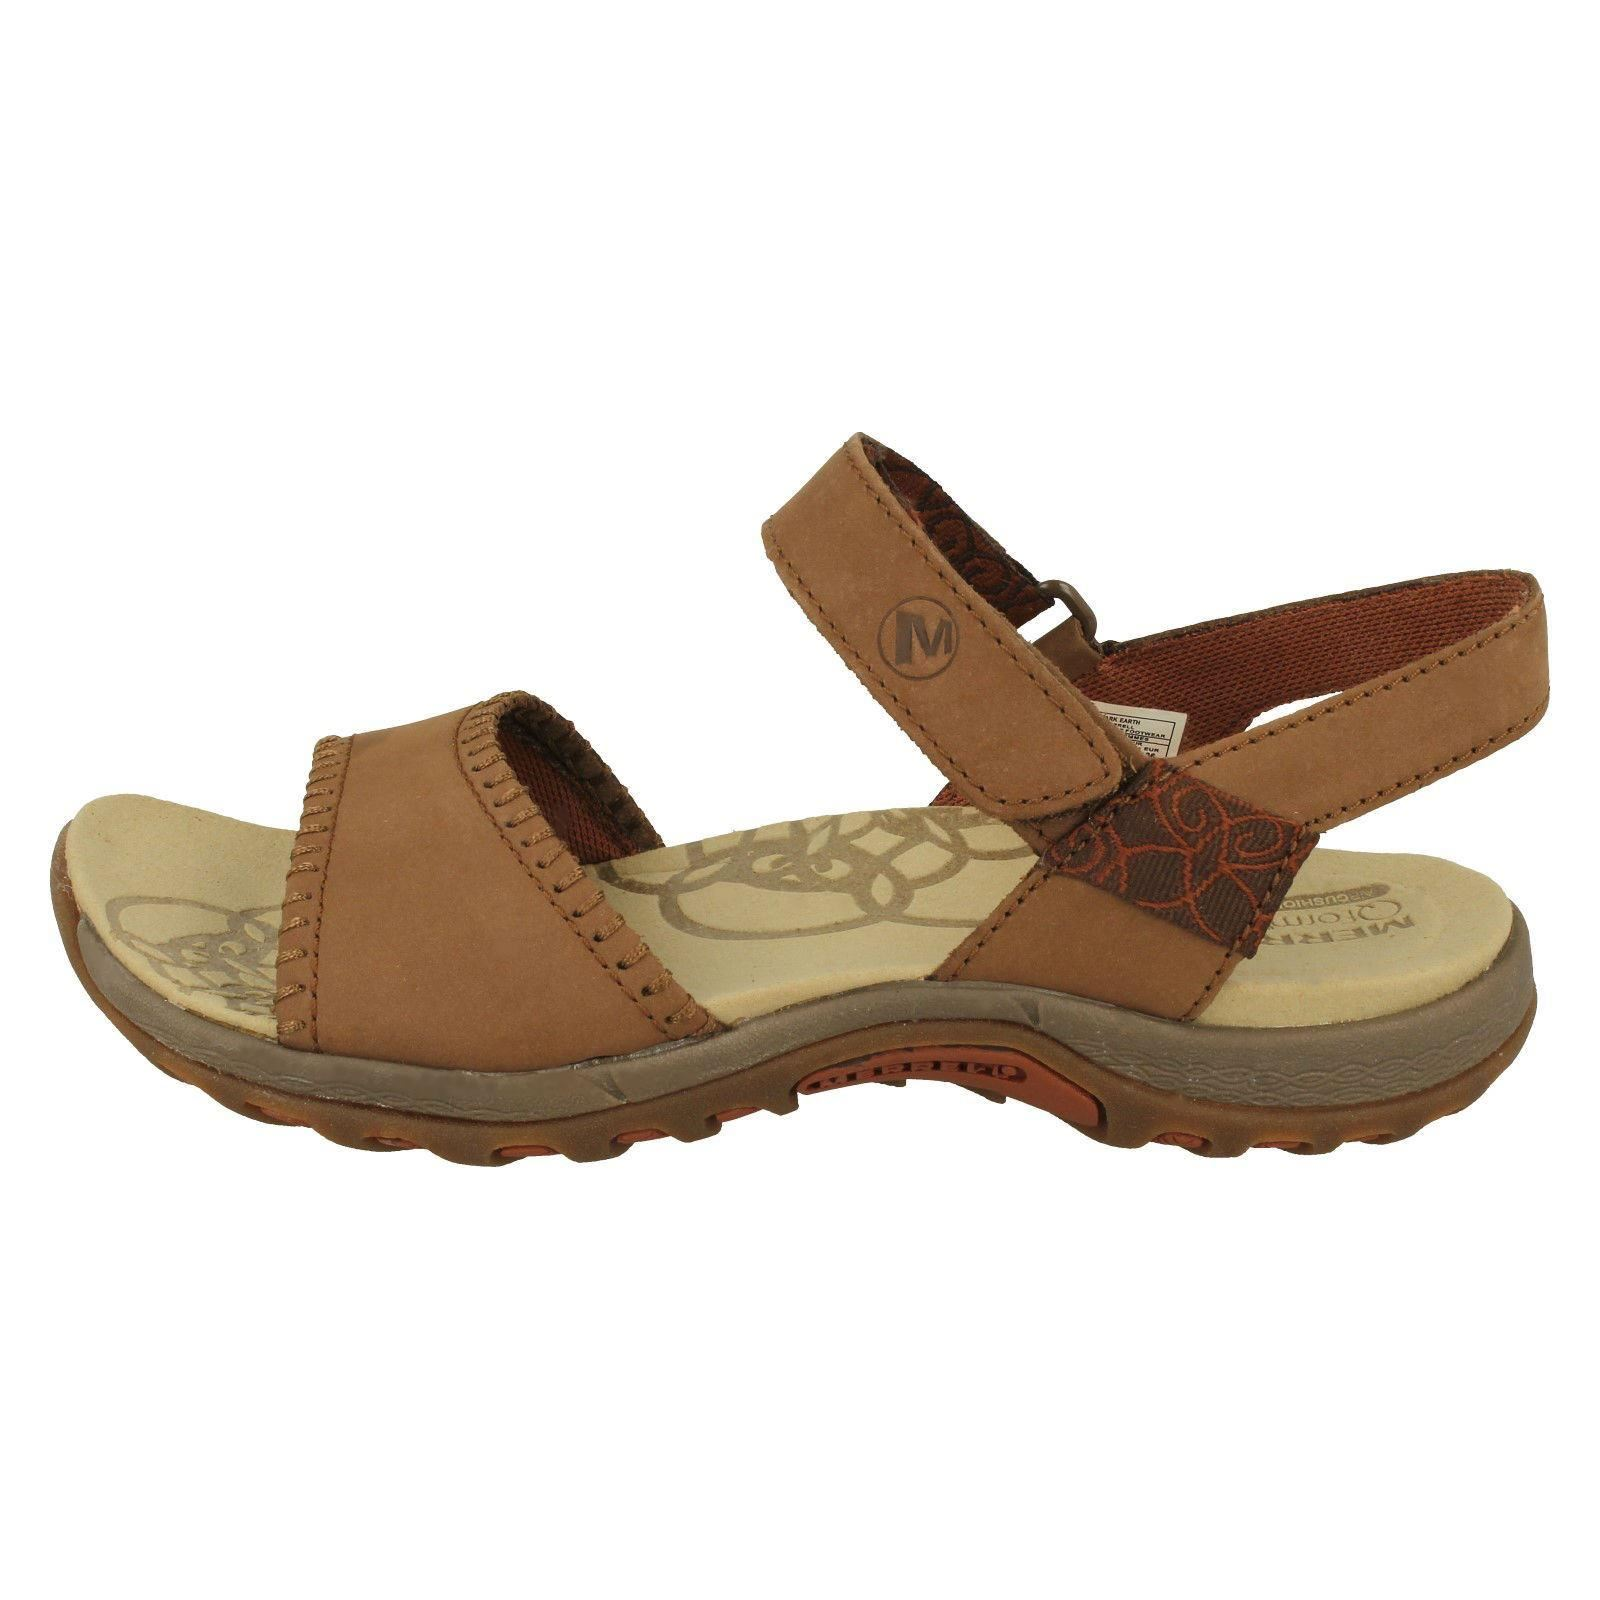 merrell womens shoes hibiscus sandals colle